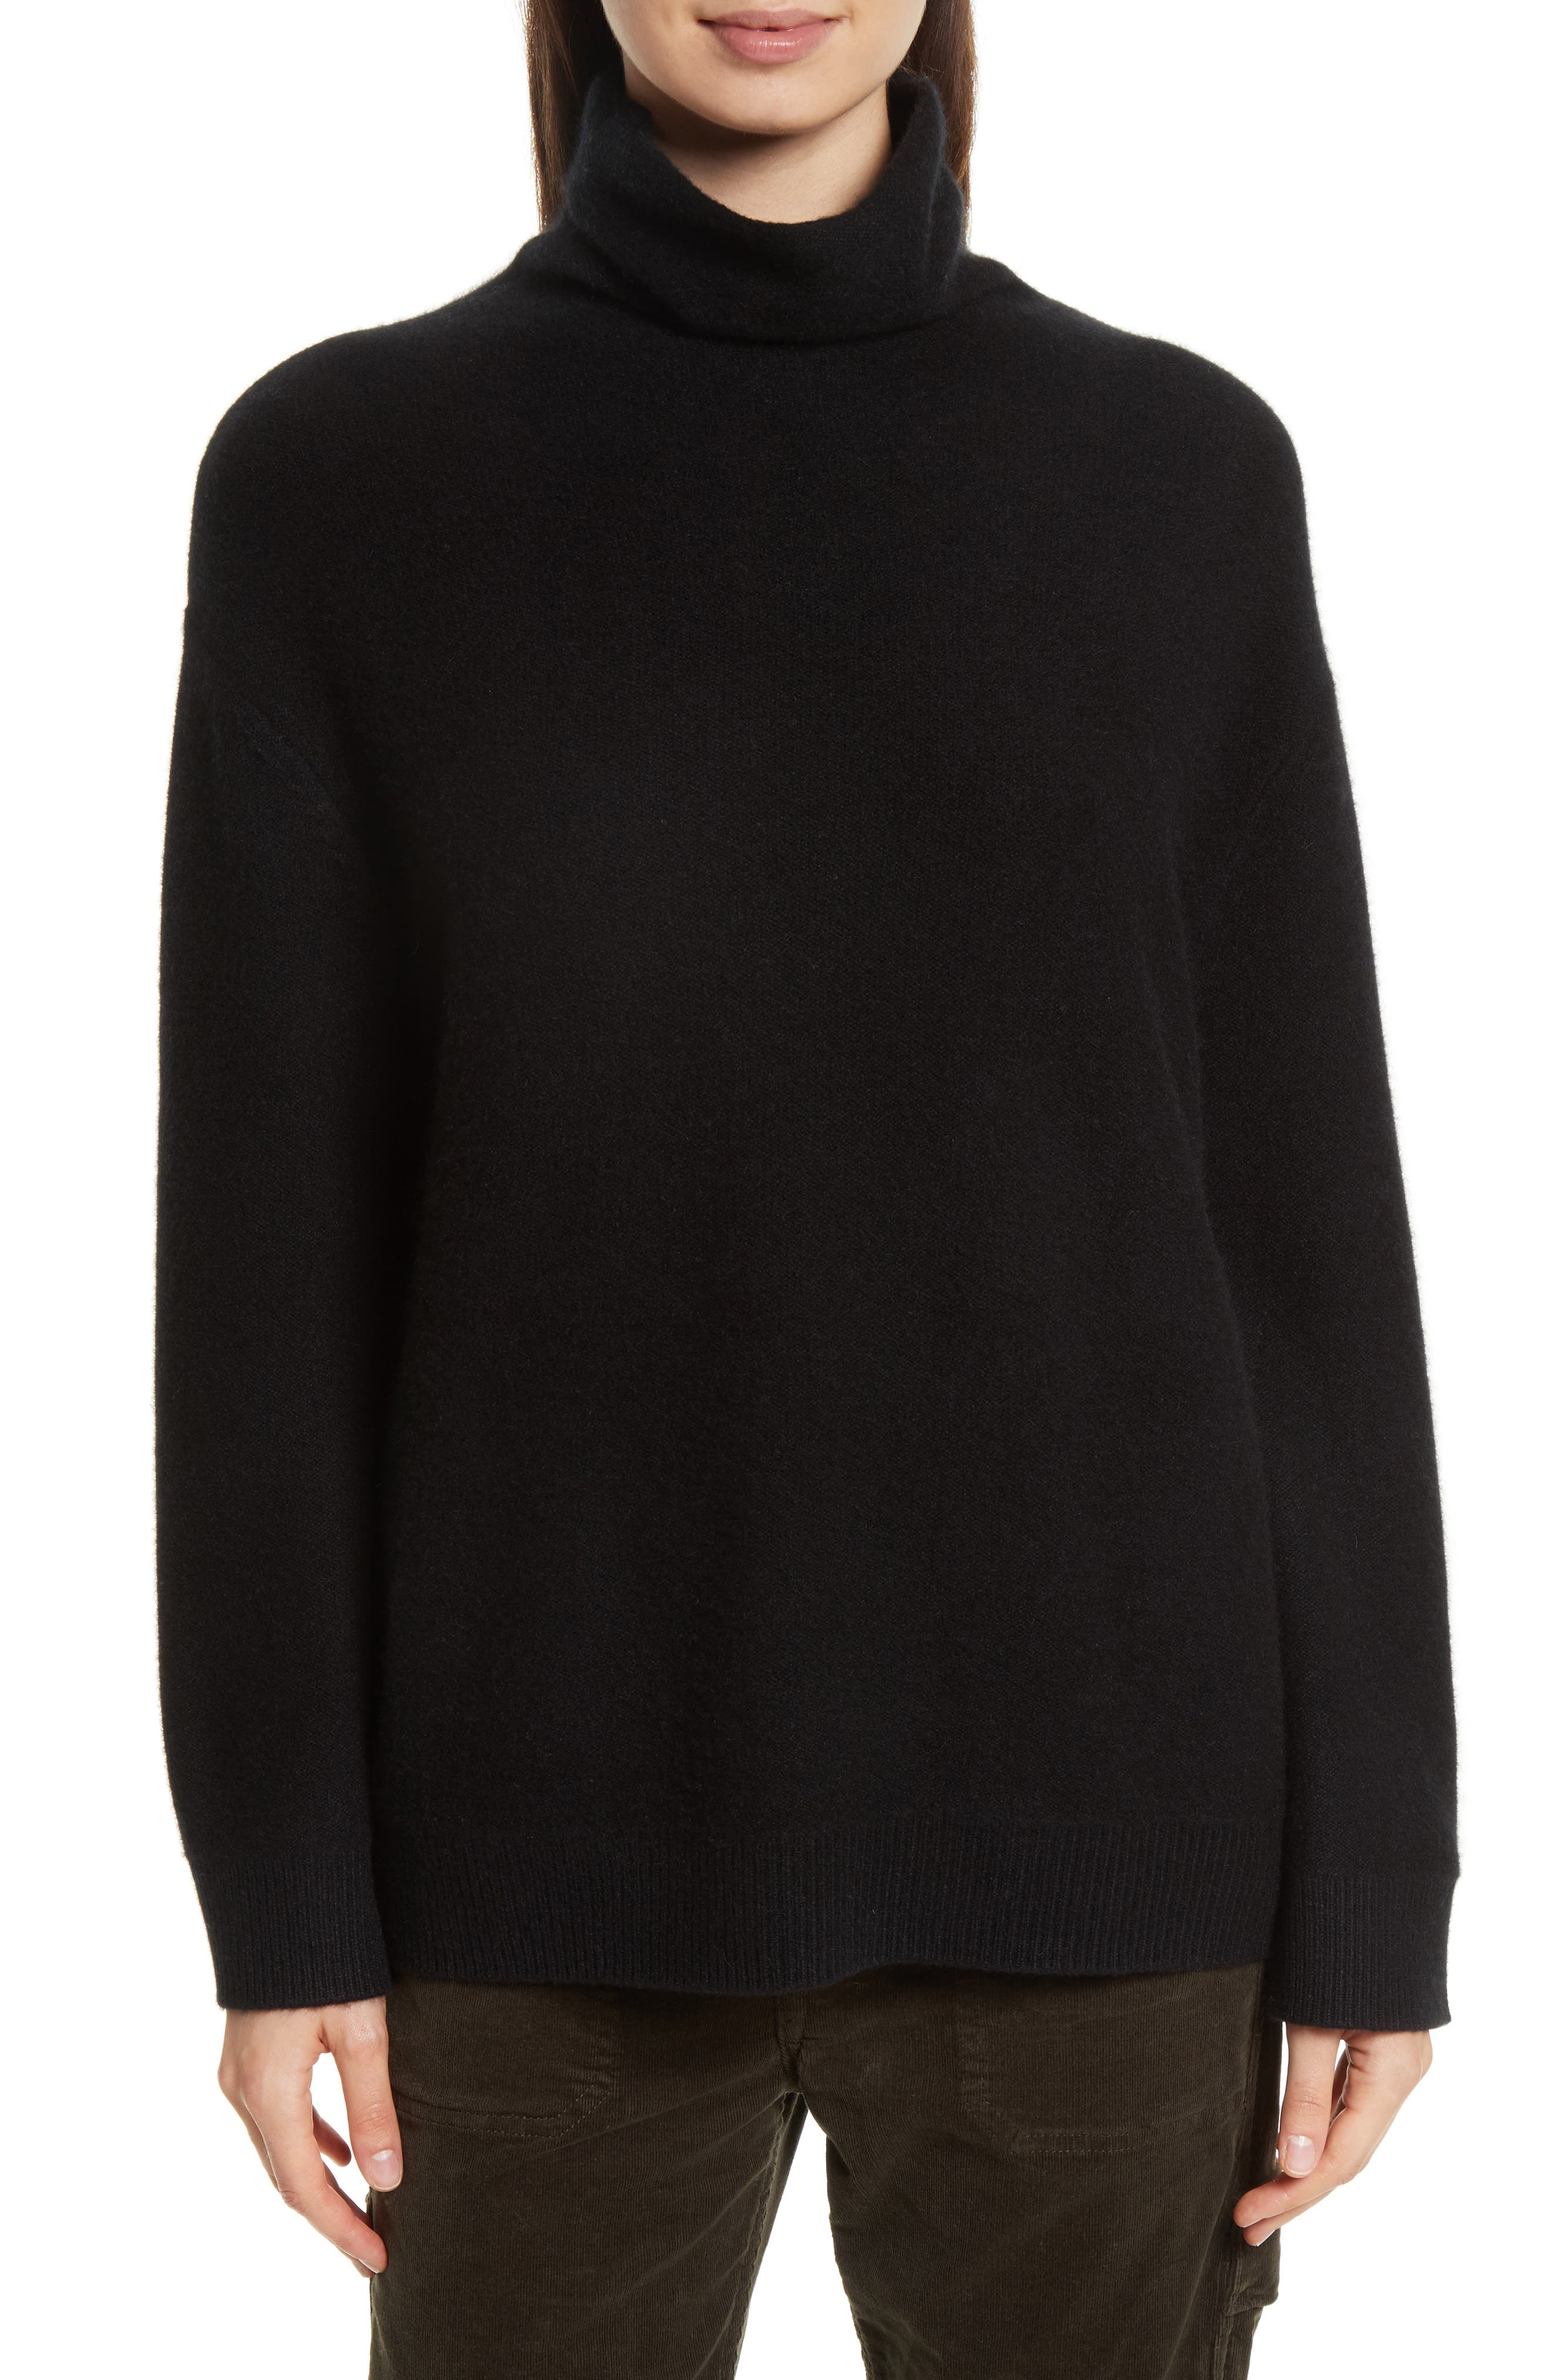 Boxy Mock Neck Cashmere Sweater,                         Main,                         color, 001